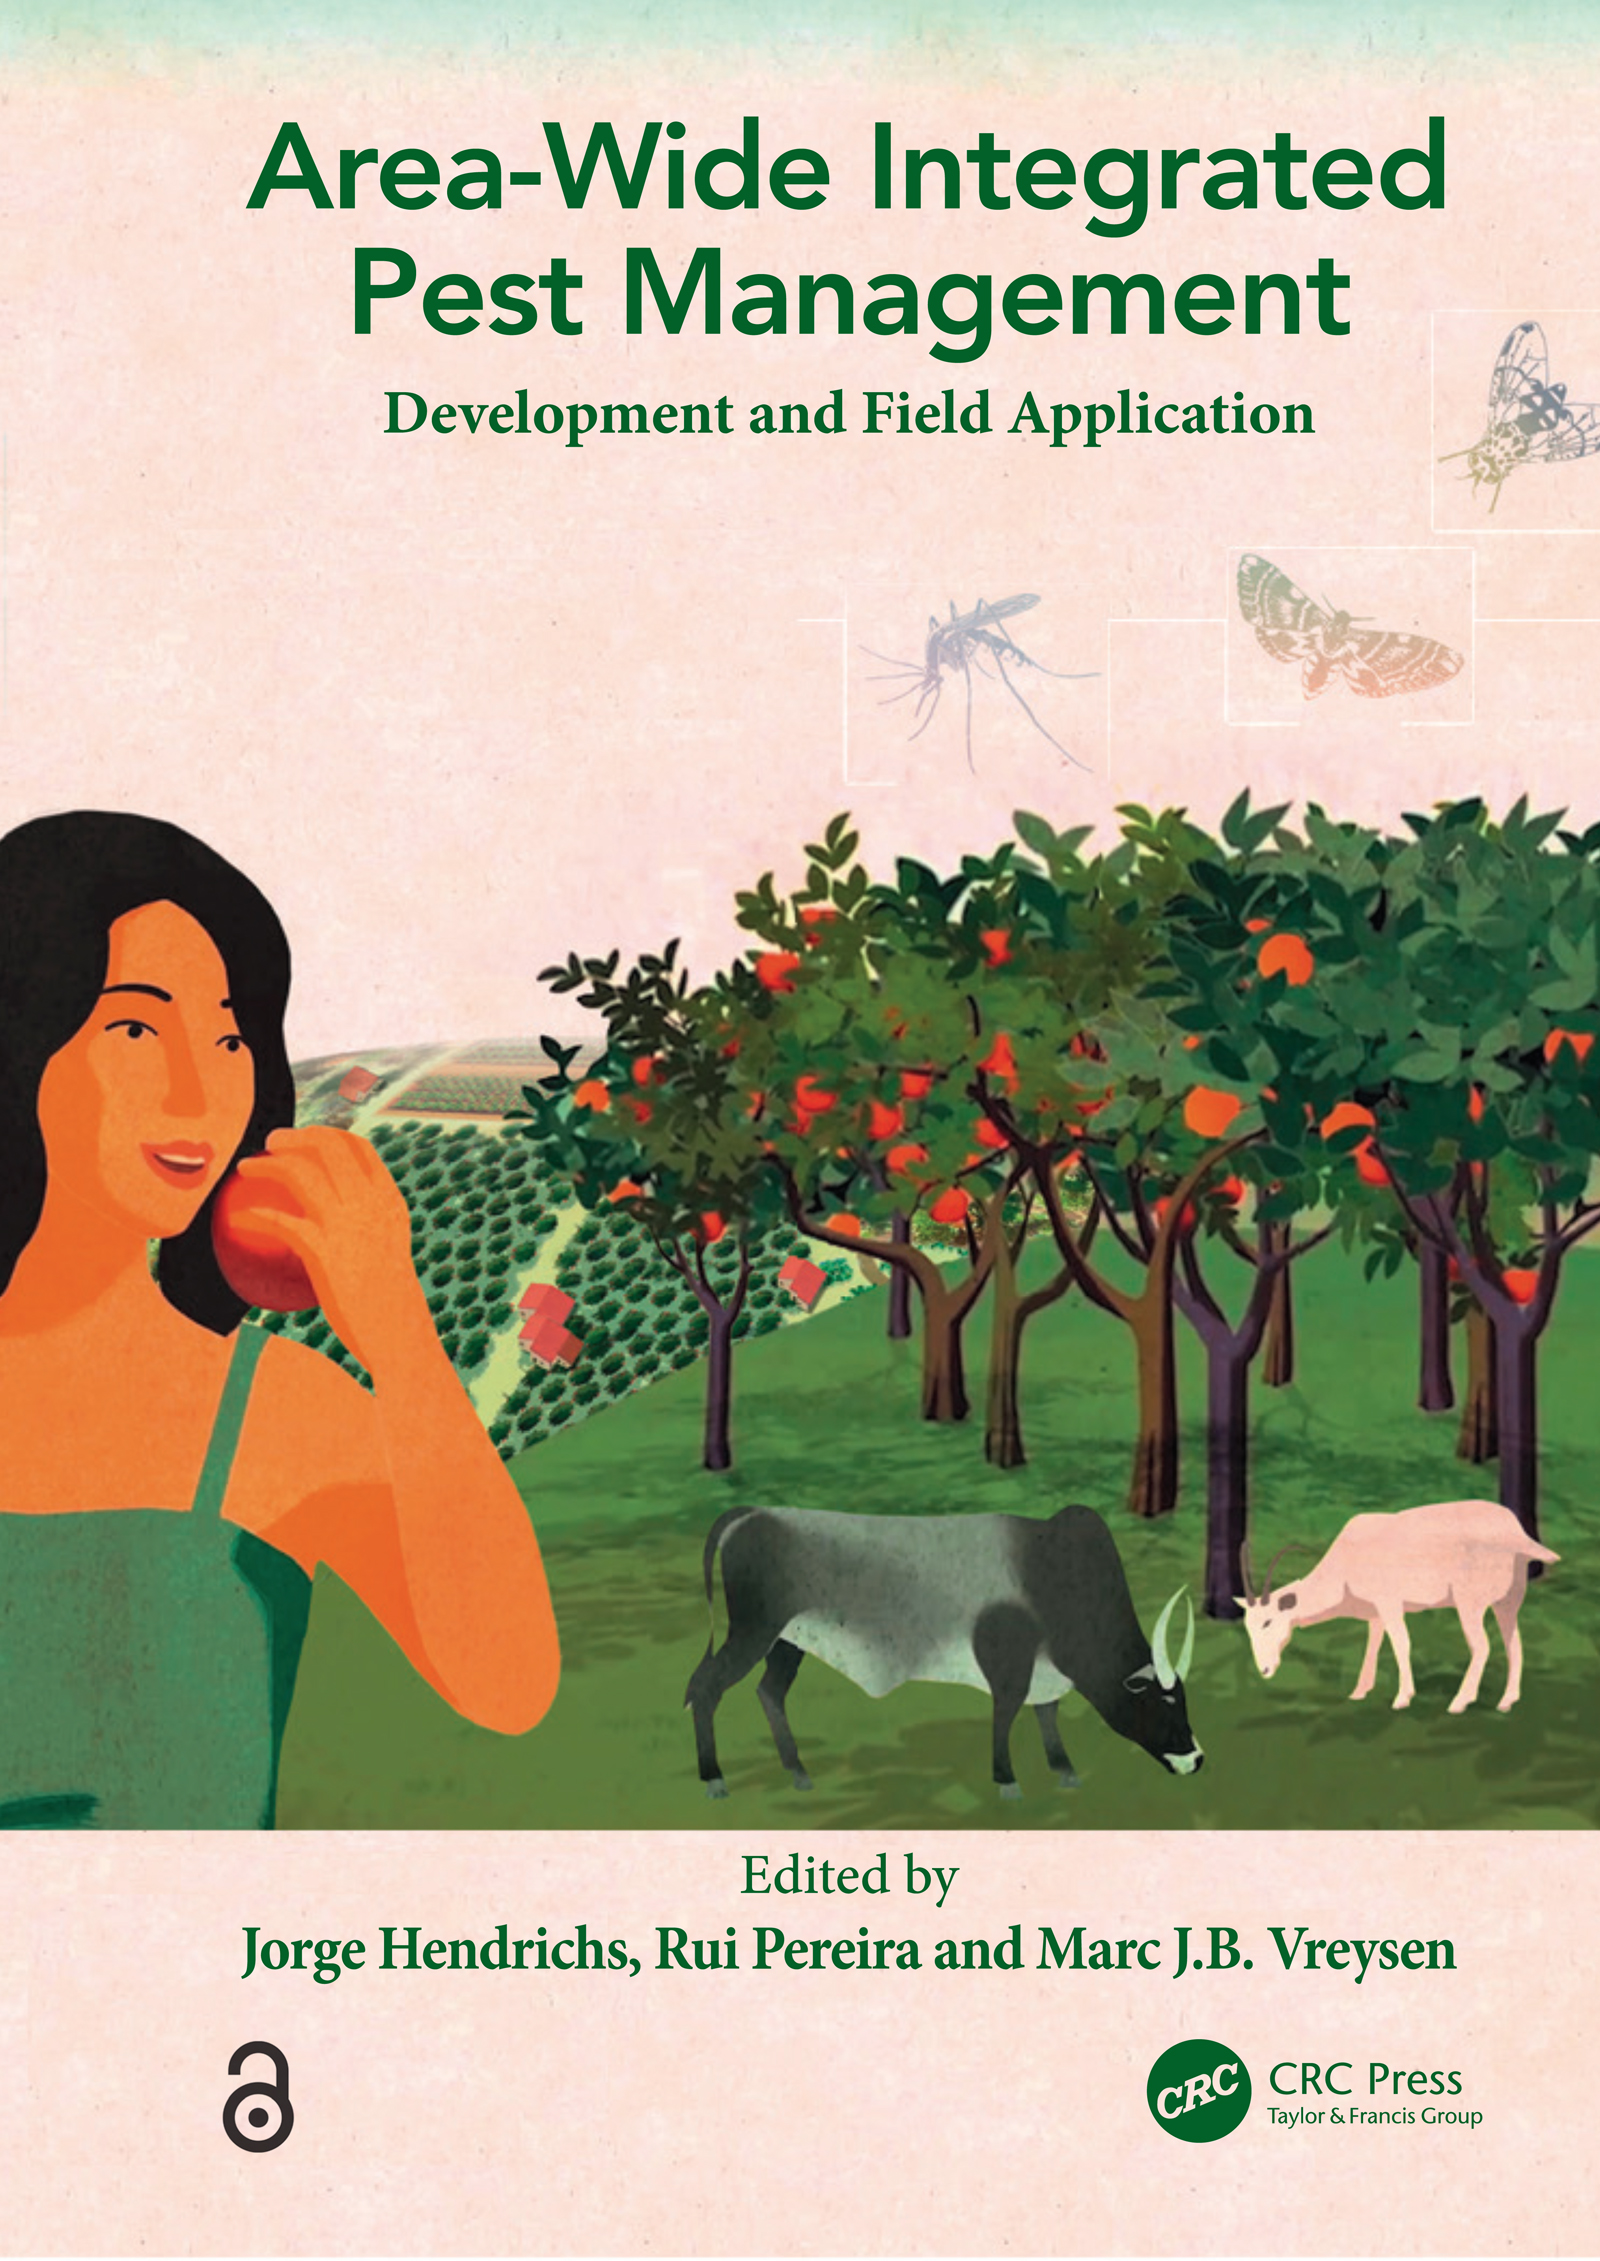 Prospects for Remotely Piloted Aircraft Systems in Area-Wide Integrated Pest Management Programmes